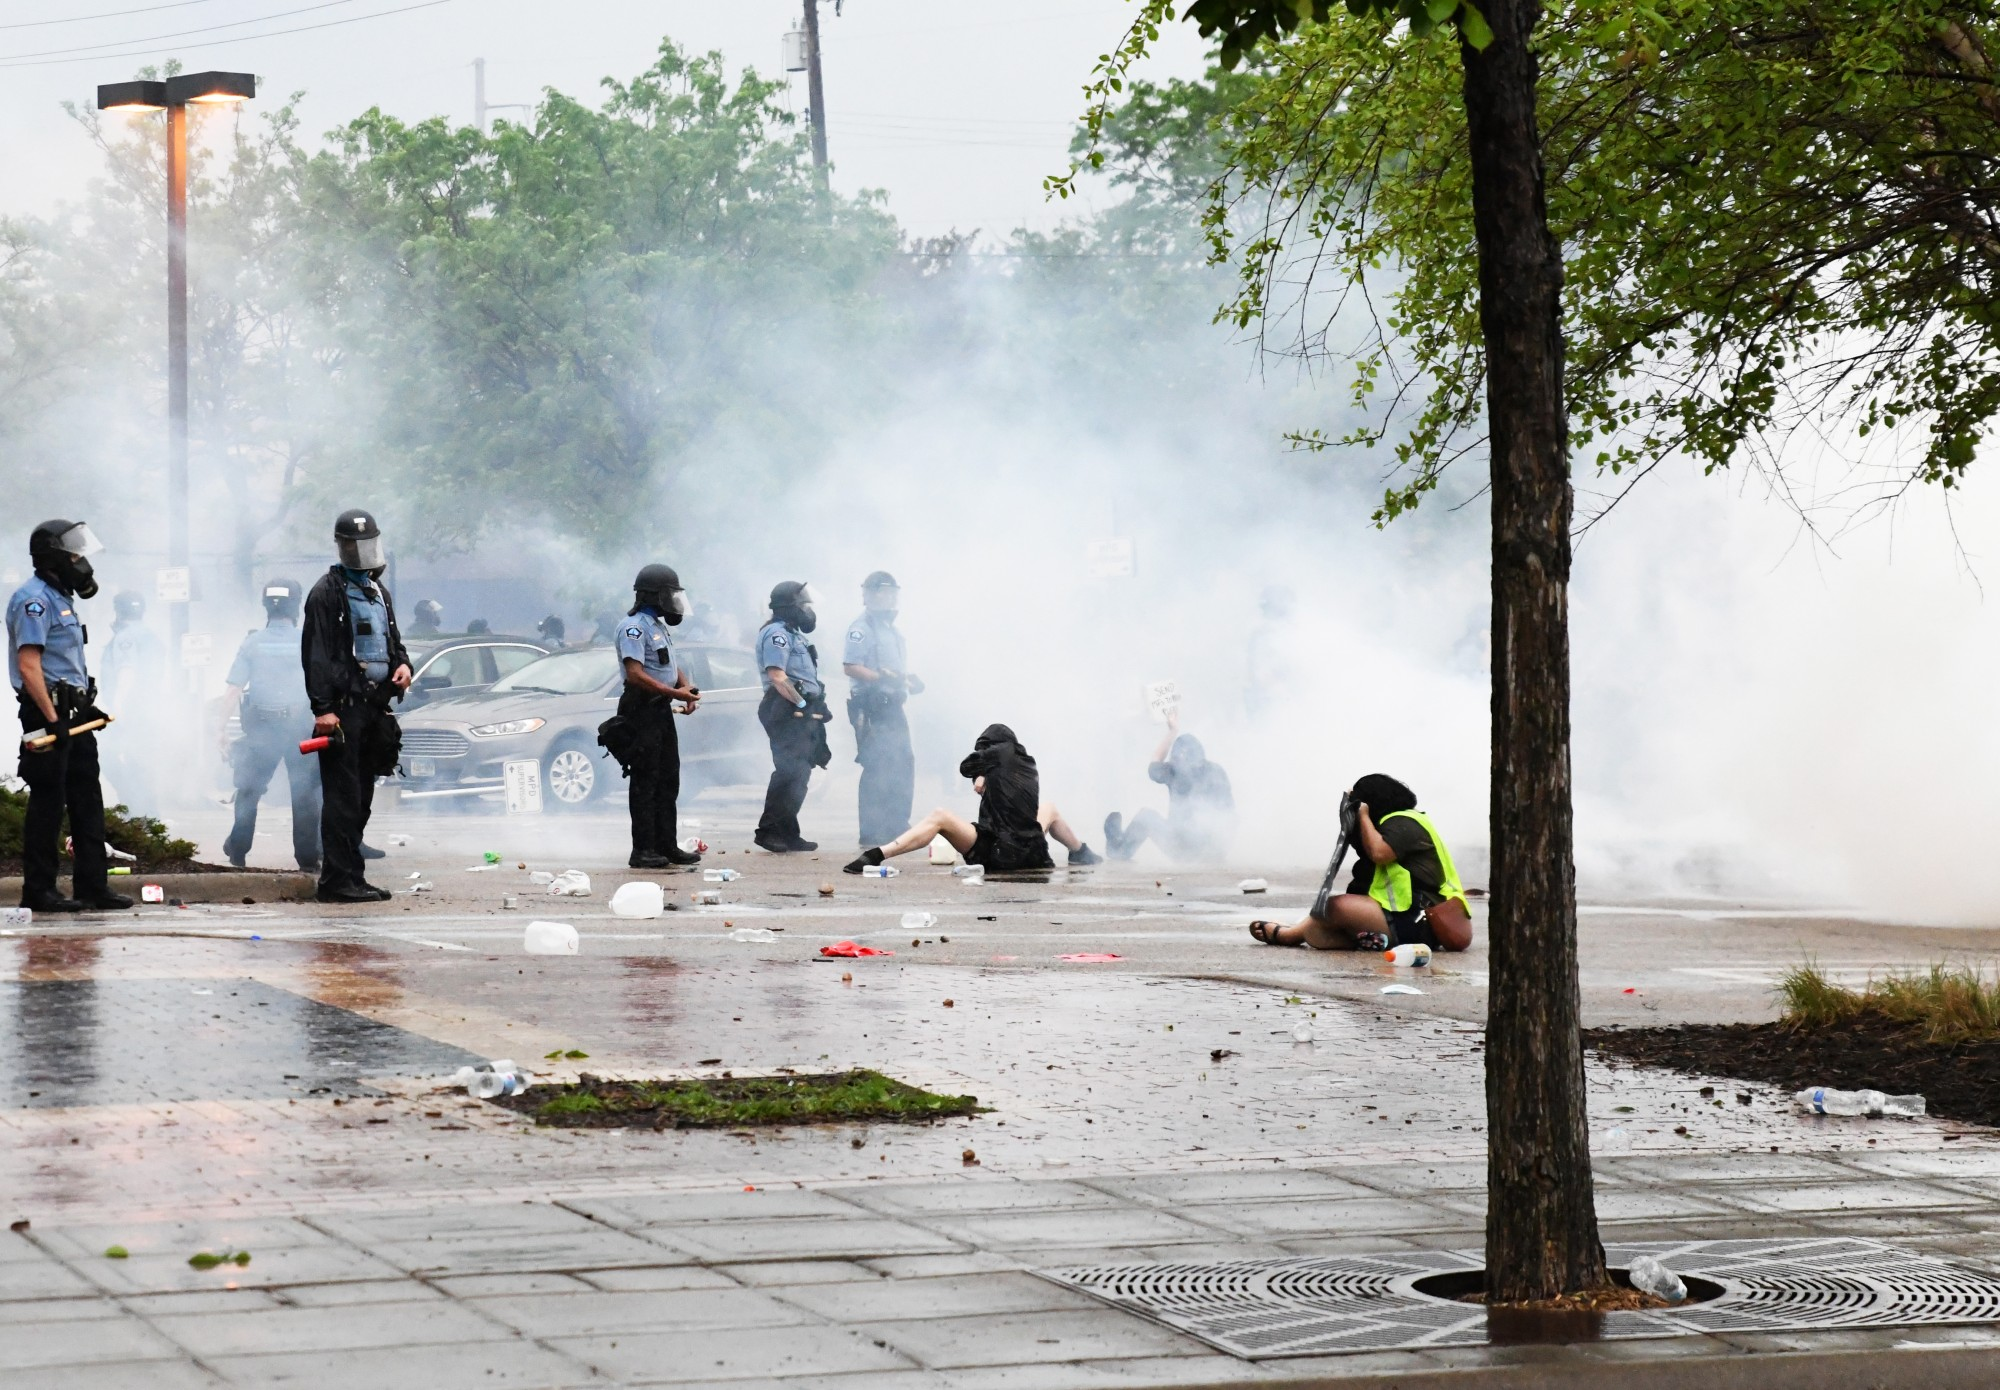 Protesters sit in clouds of tear gas outside of the Minneapolis 3rd Police Precinct on Minnehaha Avenue on Tuesday, May 26.